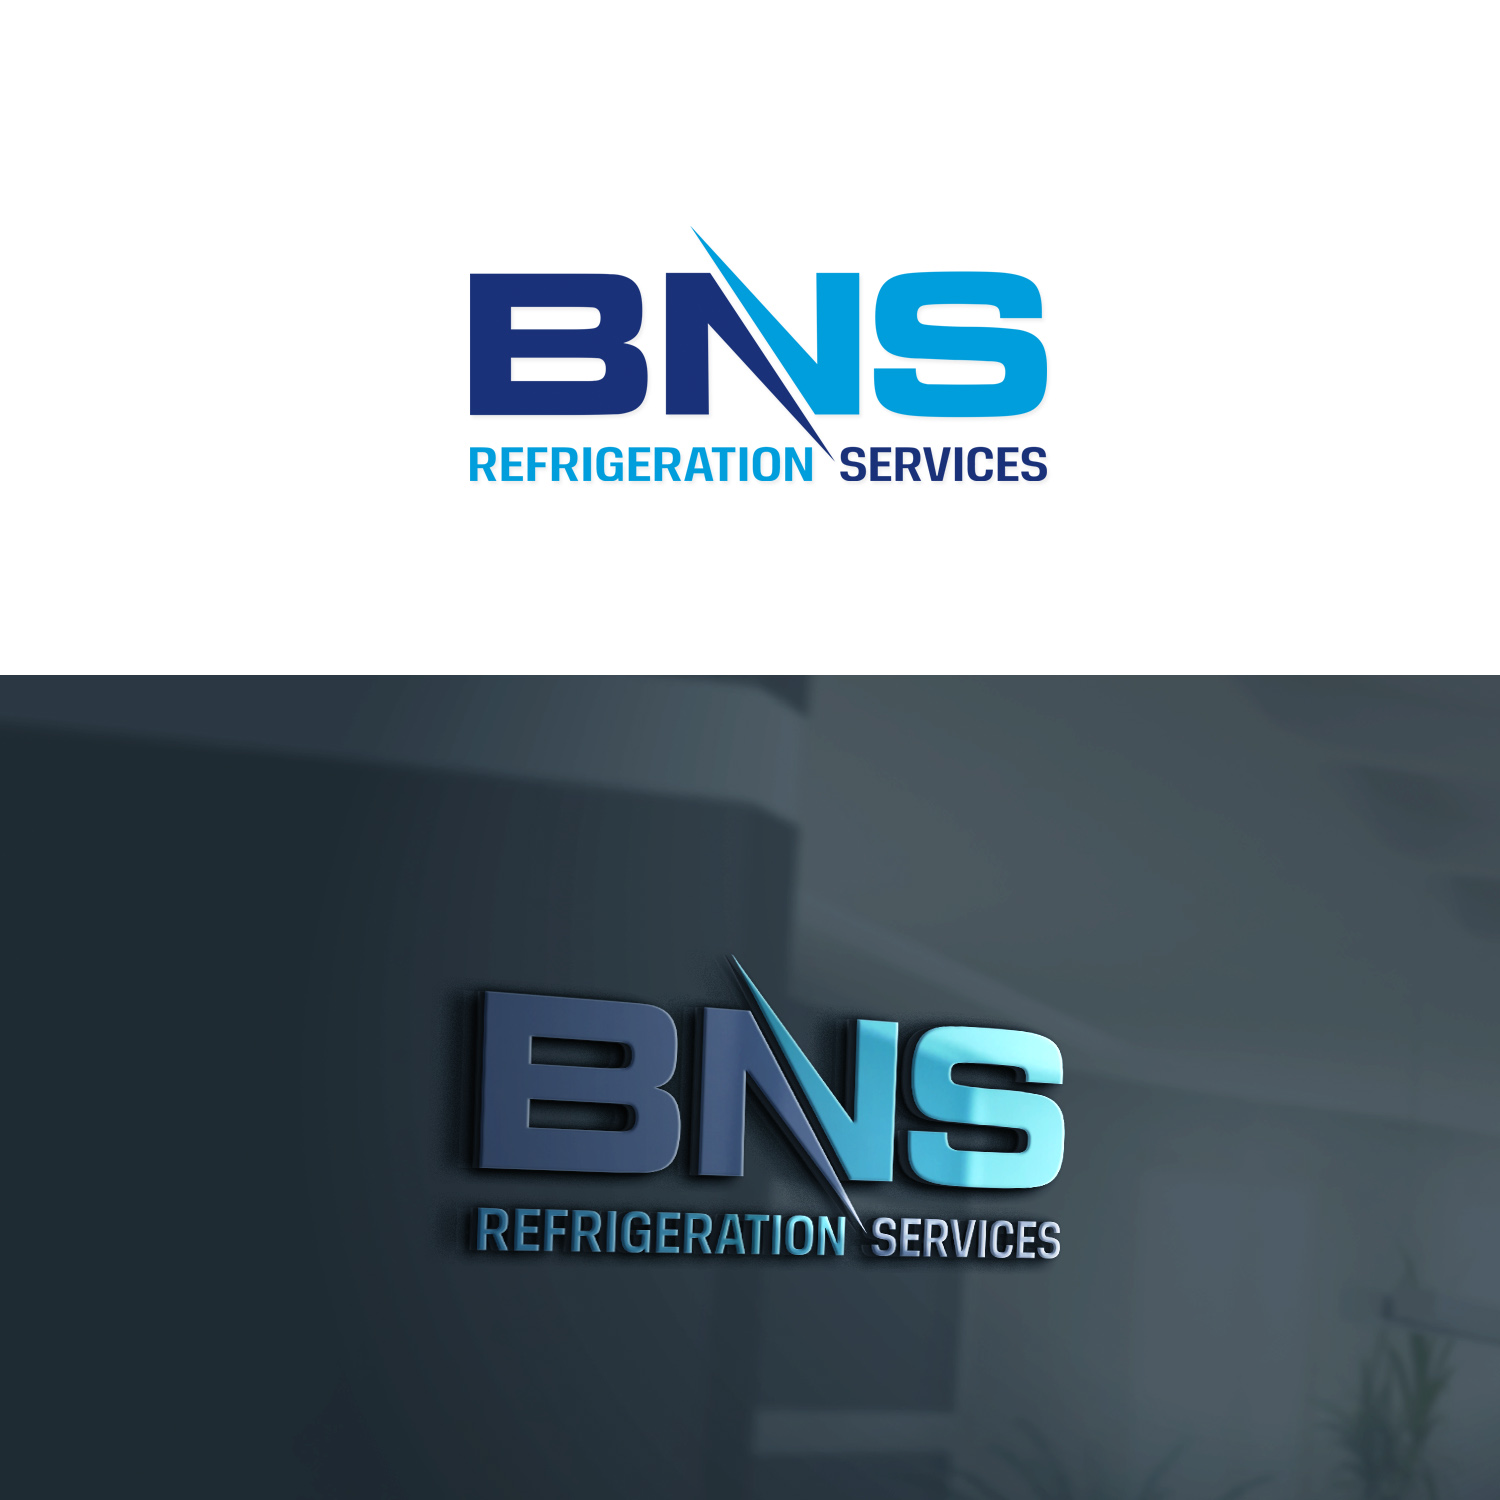 Modern, Professional Logo Design for BNS REFRIGERATION